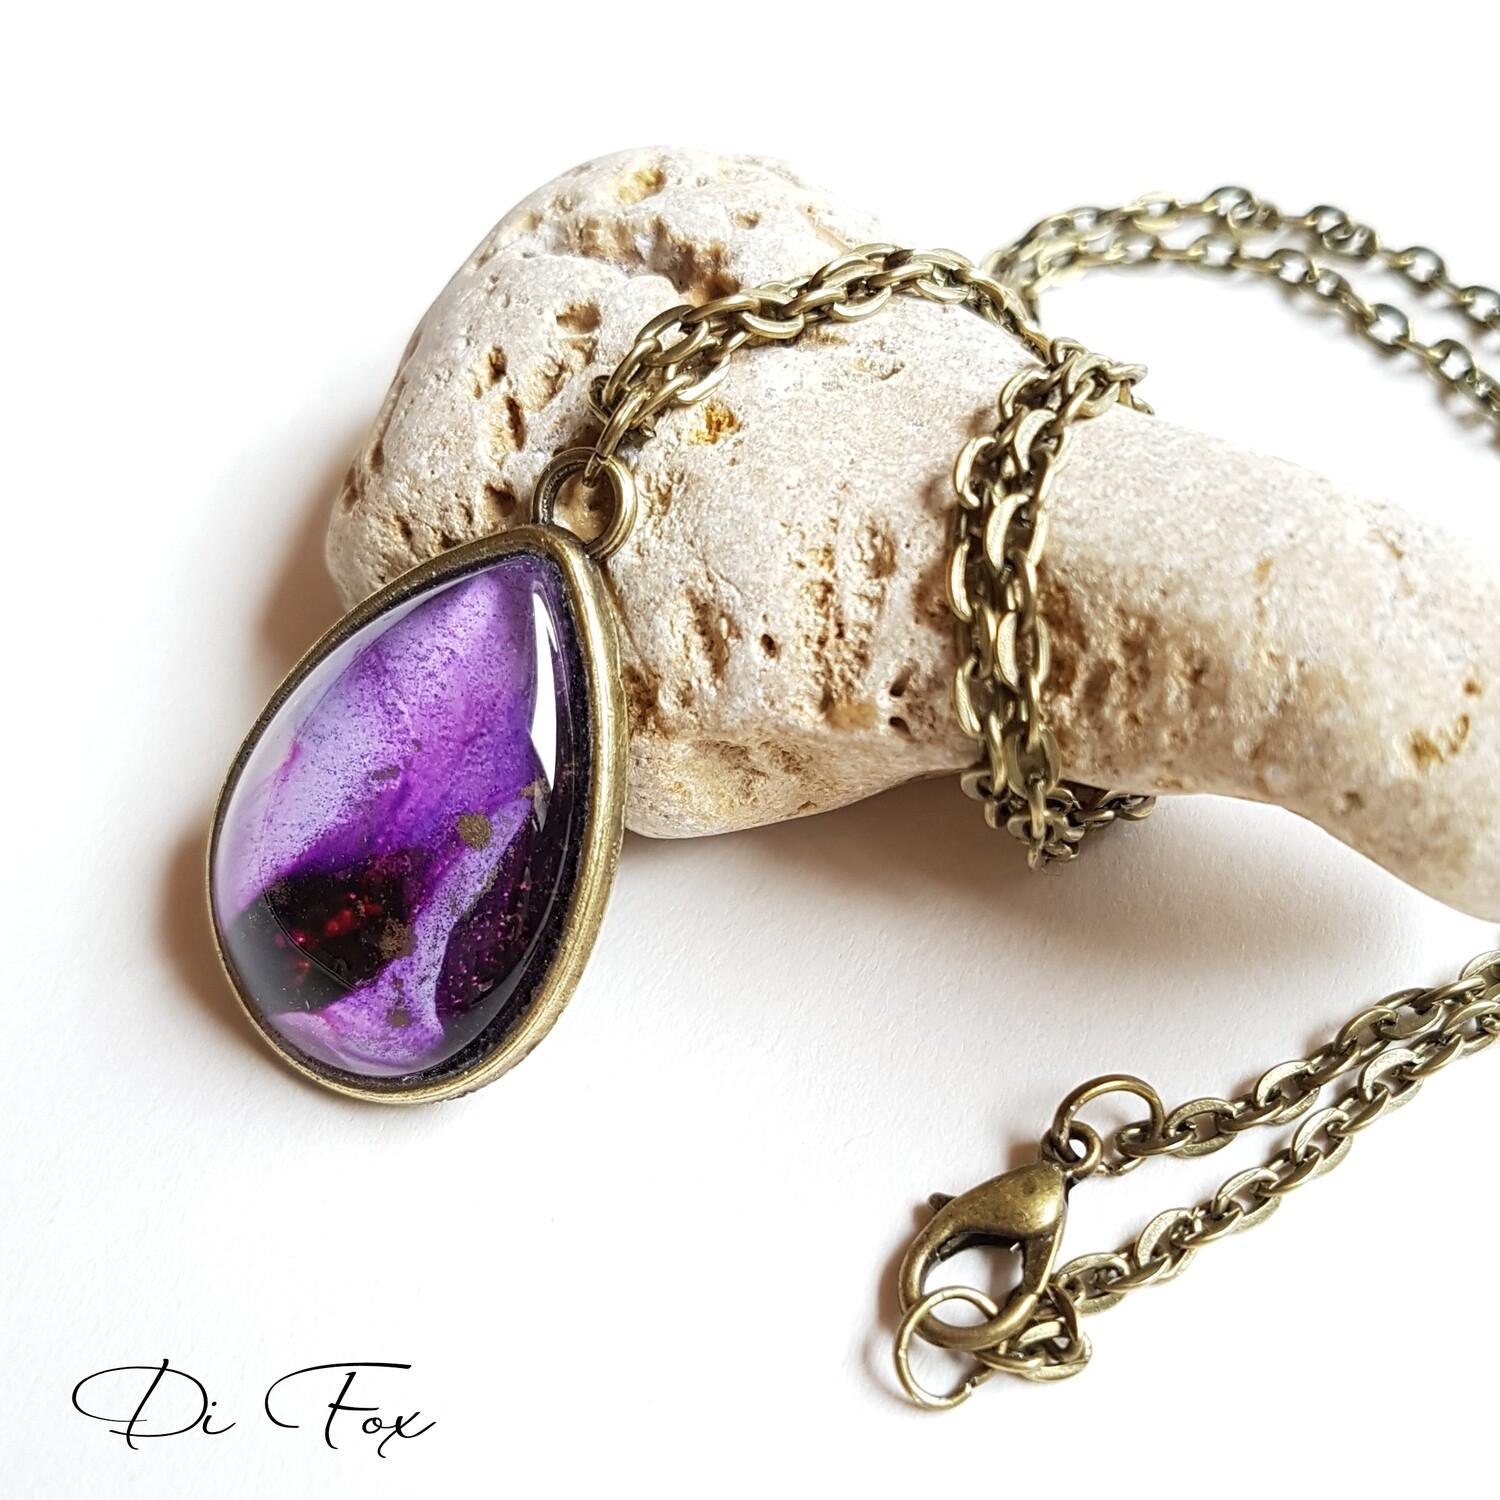 Bronze teardrop pendant & chain in Deep Violet with gold